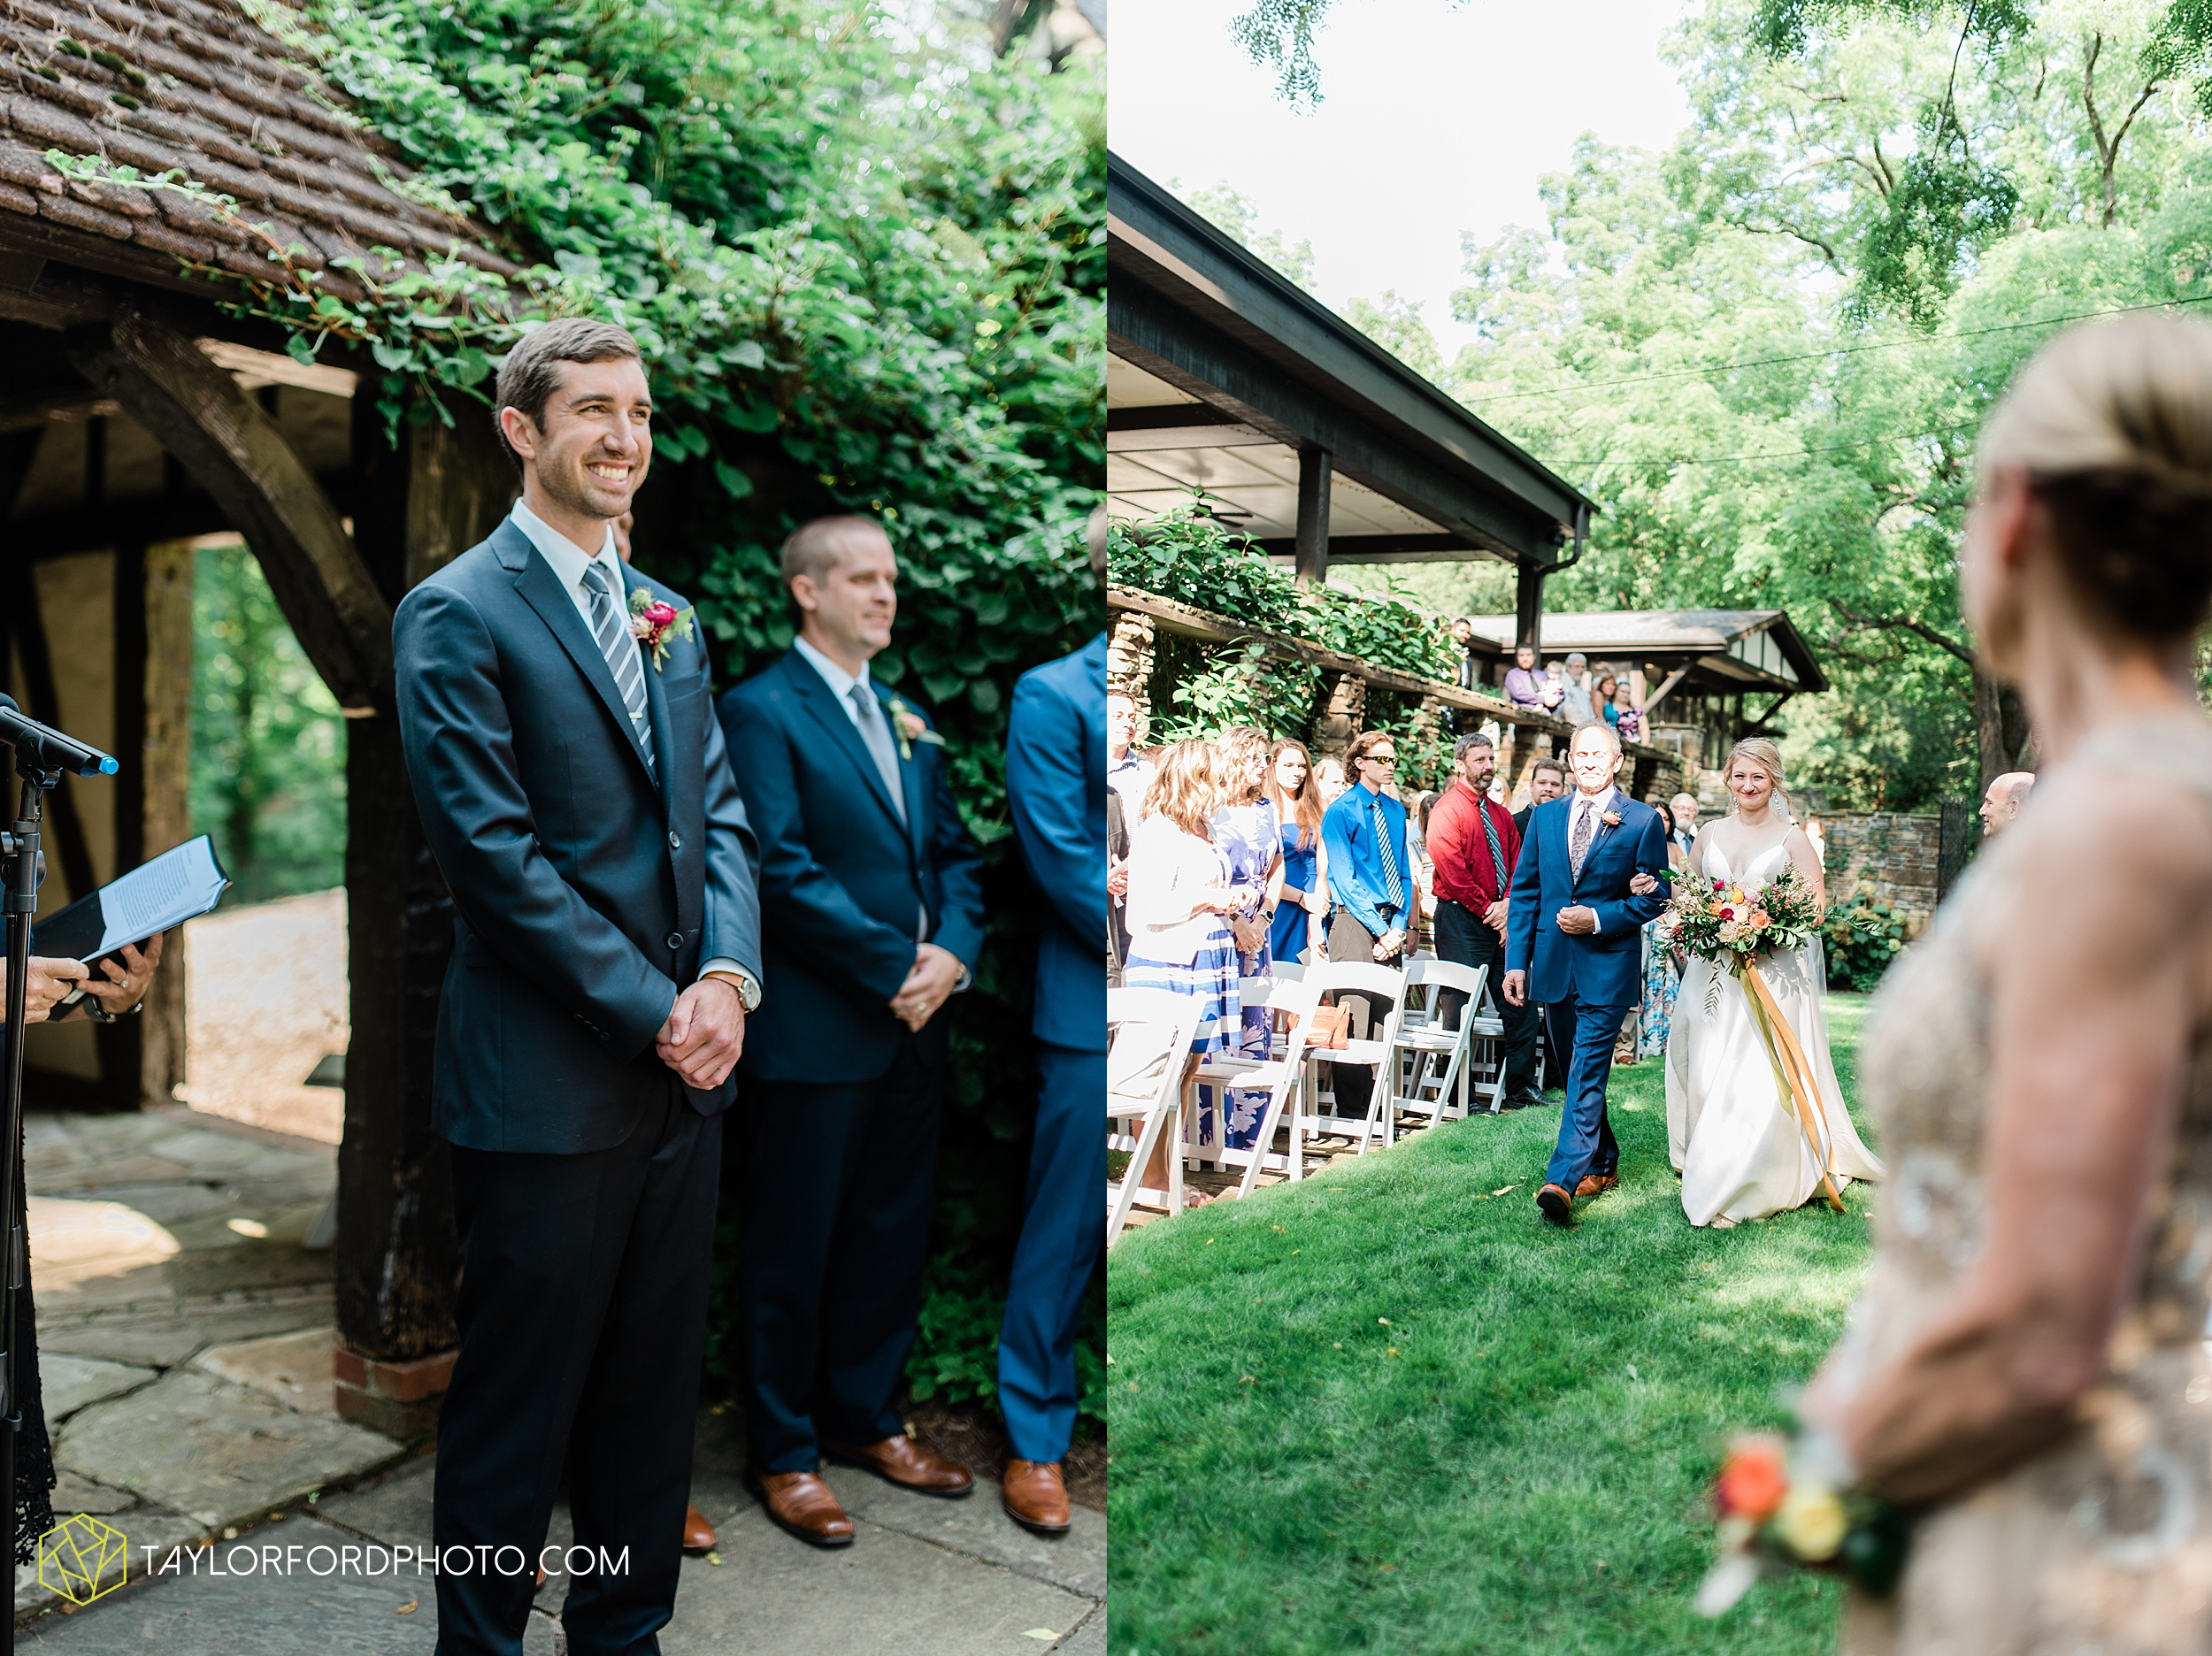 margot-may-evan-kohler-club-at-hillbrook-cleveland-chagrin-falls-outdoor-wedding-bhldn-gardenview-flowers-toledo-photographer-taylor-ford-photographer_9578.jpg